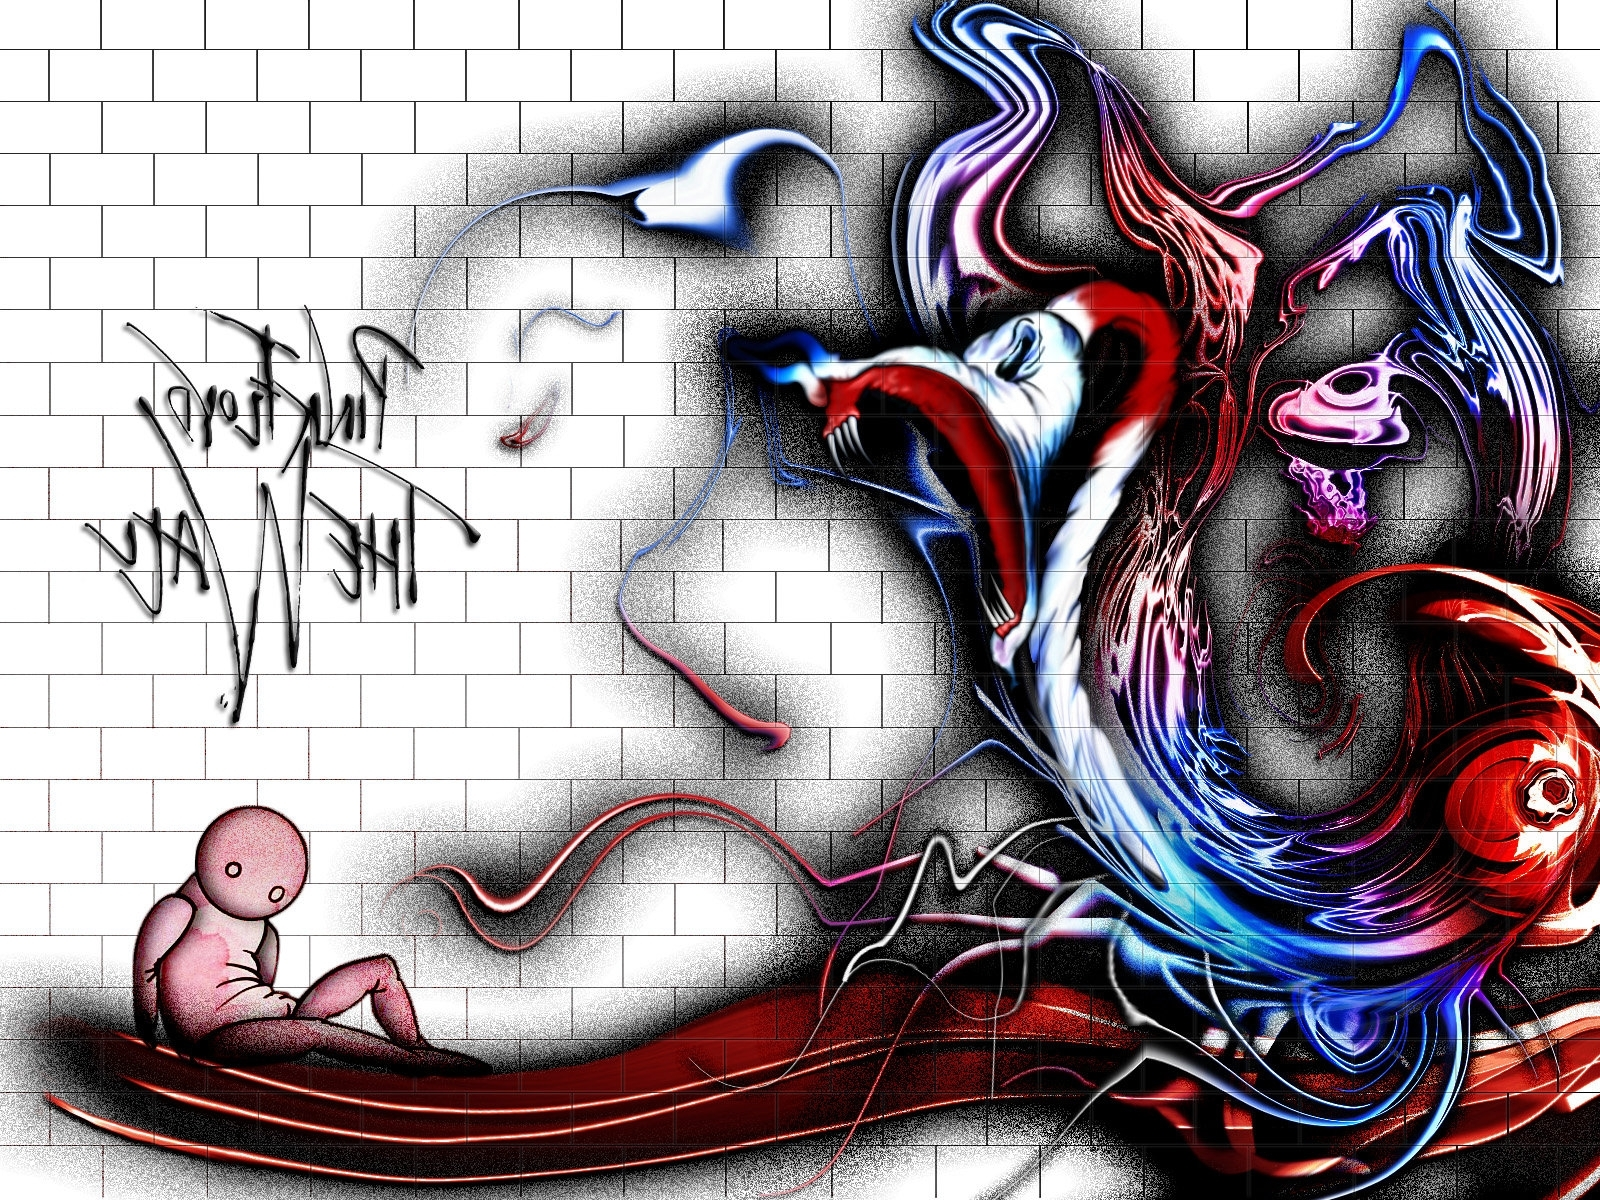 Pink' Floyd – The Wallemrat On Deviantart Intended For 2017 Pink Floyd The Wall Art (View 6 of 15)